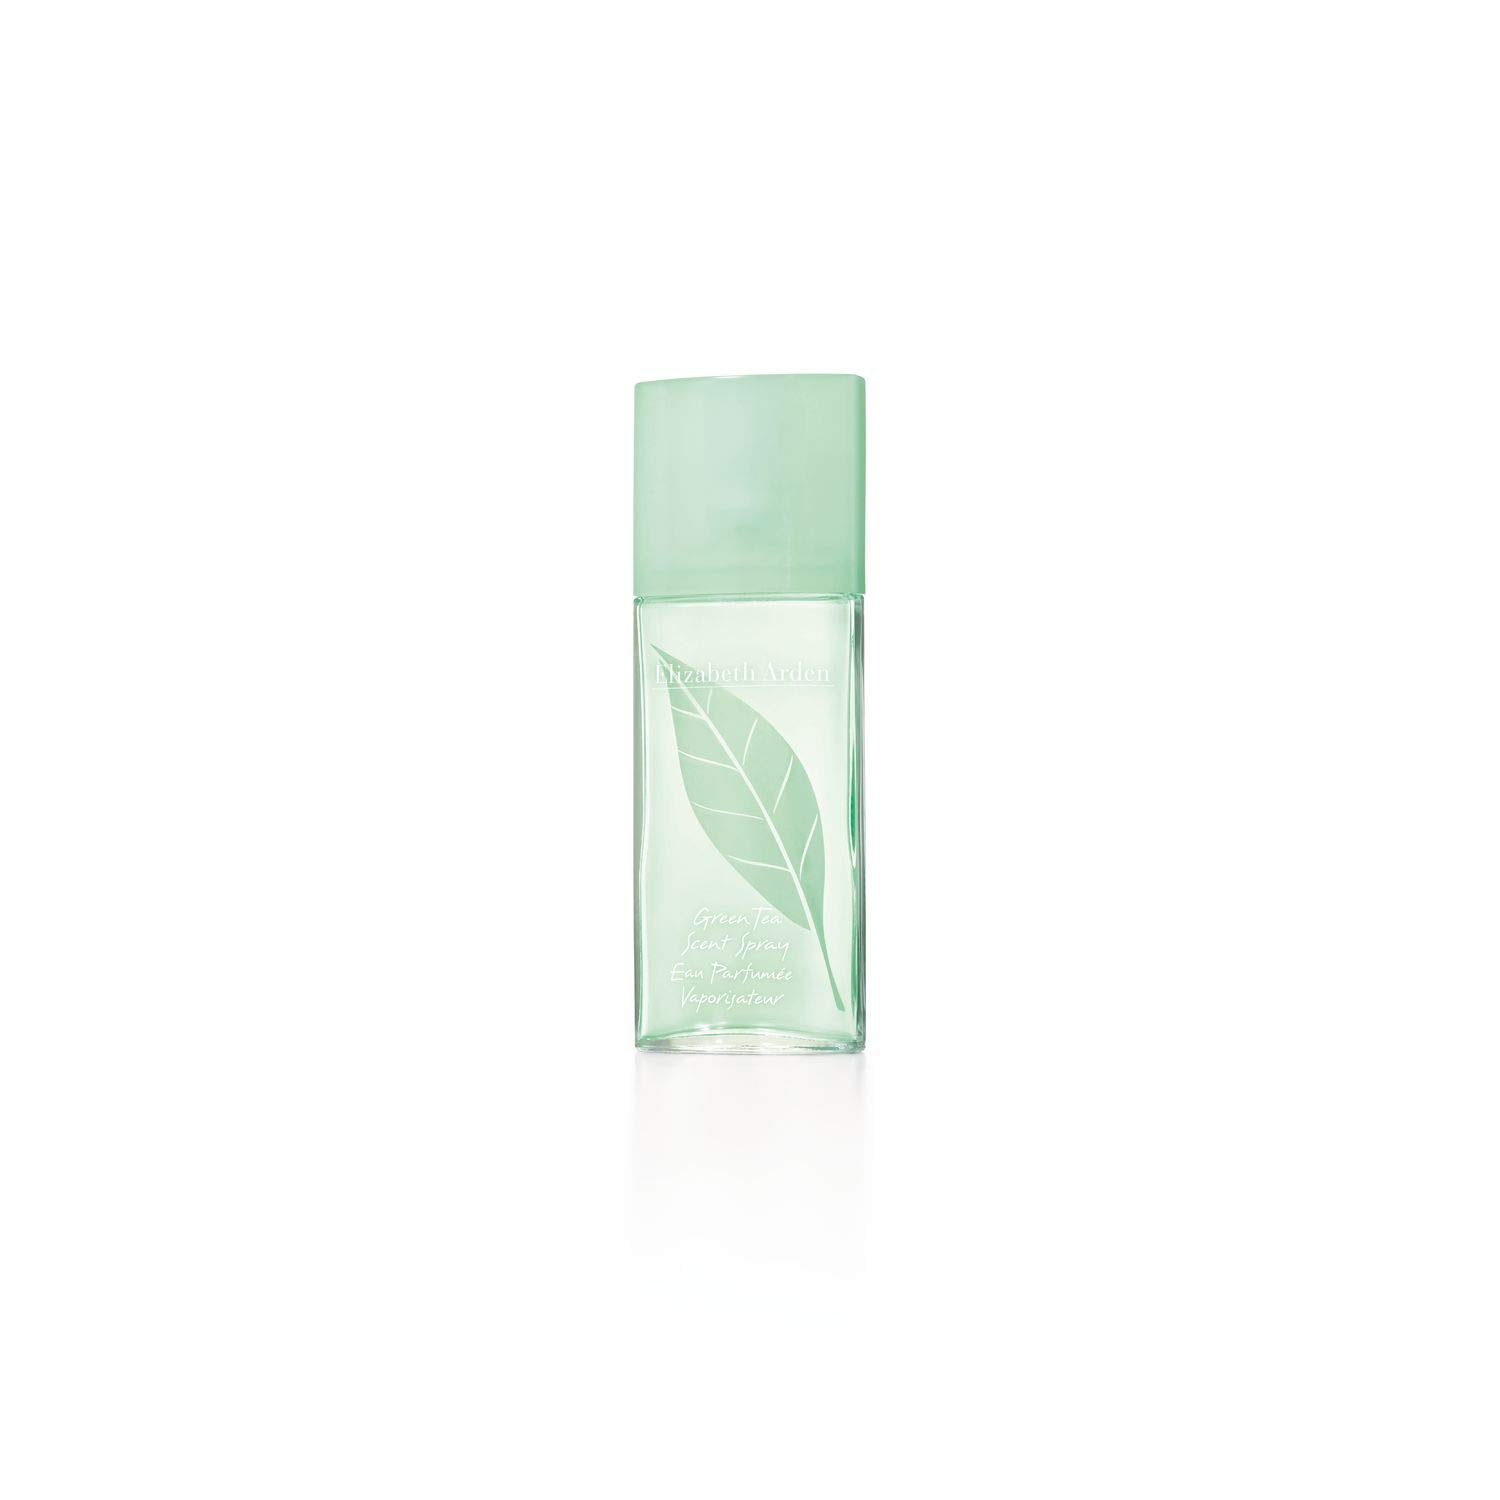 Elizabeth Arden Green Tea Scent Spray, 3.3 fl. oz. by Elizabeth Arden